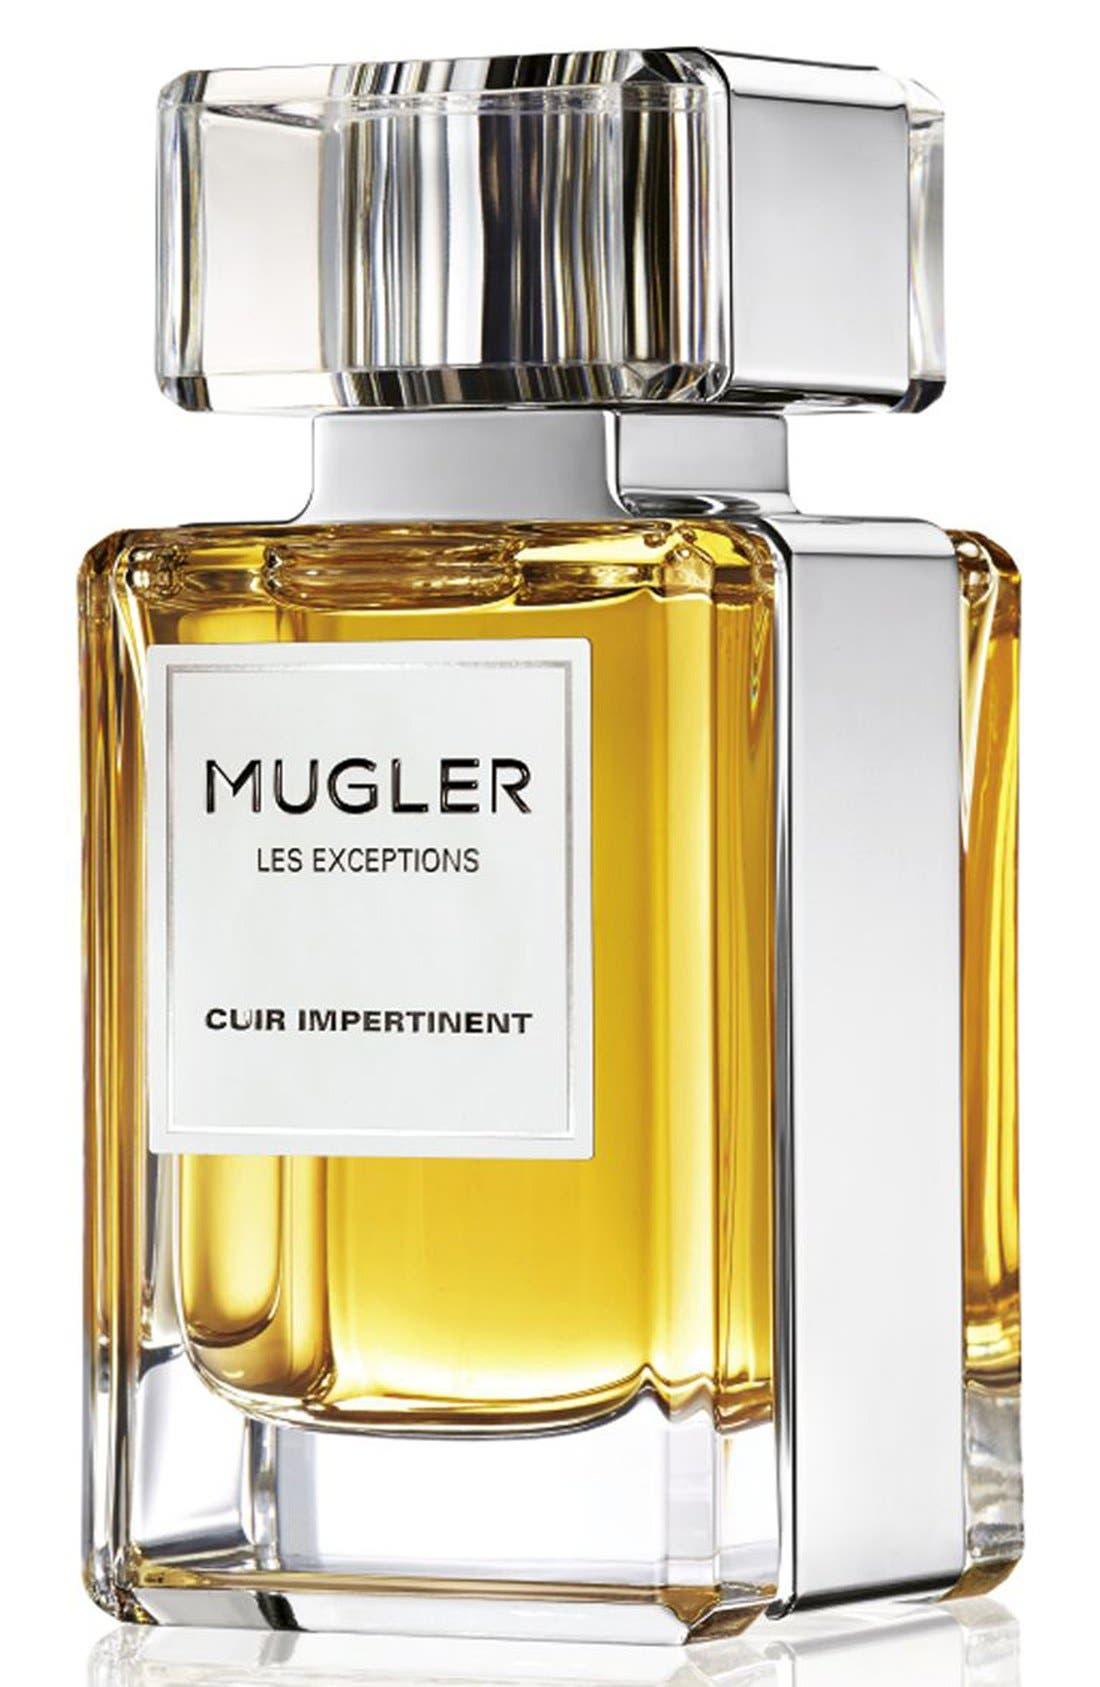 Mugler 'Les Exceptions - Cuir Impertinent' Eau de Parfum Refillable Spray (Nordstrom Exclusive)